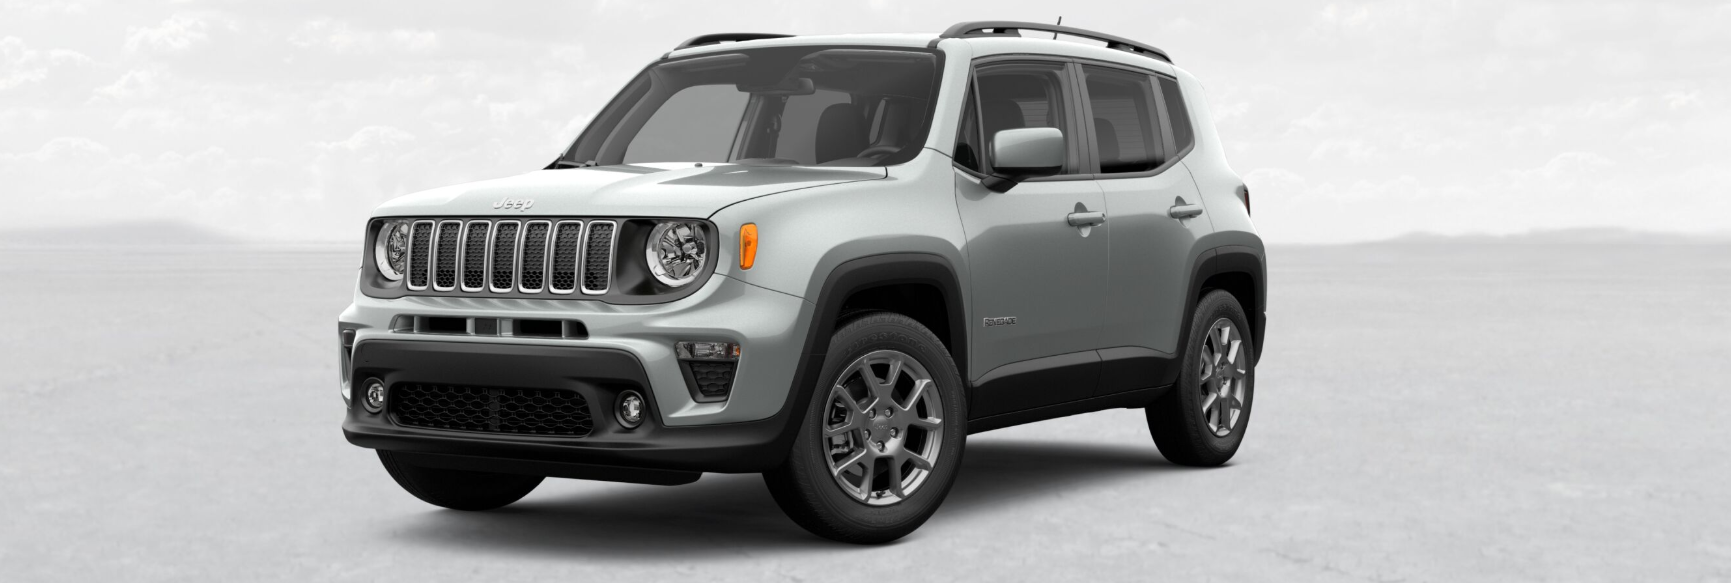 2019 Jeep Renegade Exterior Color Options Stillwater Fury